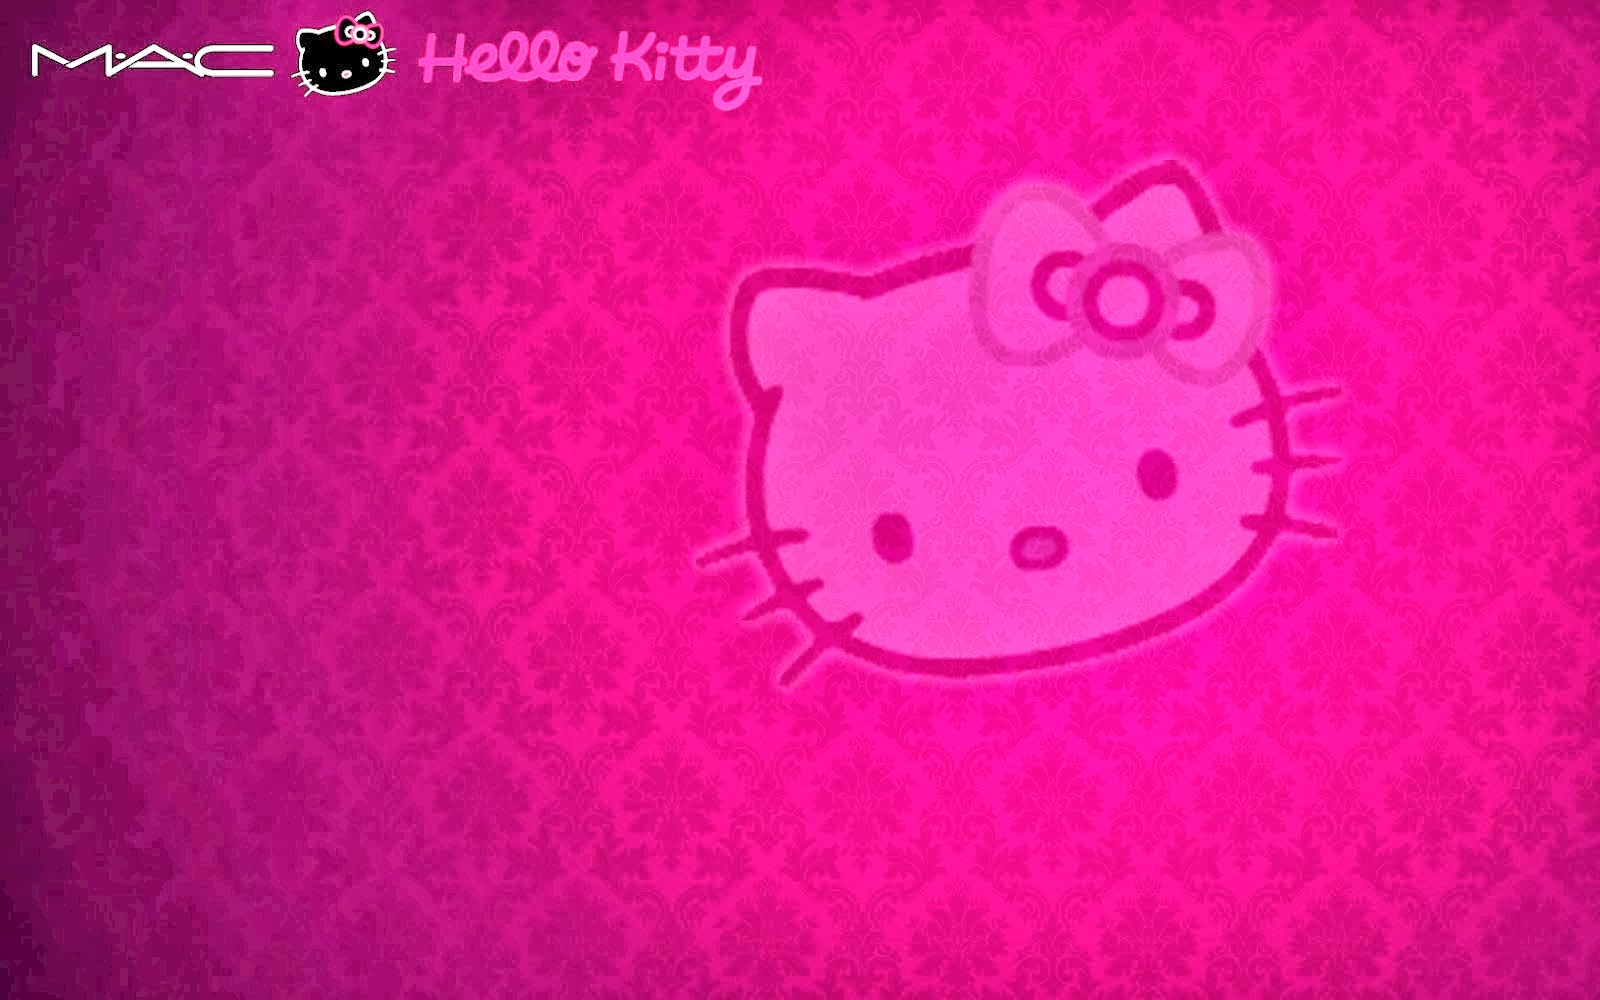 Download Wallpaper Hello Kitty Mac - Hello-kitty-wallpaper-29  Pictures_995661.jpg